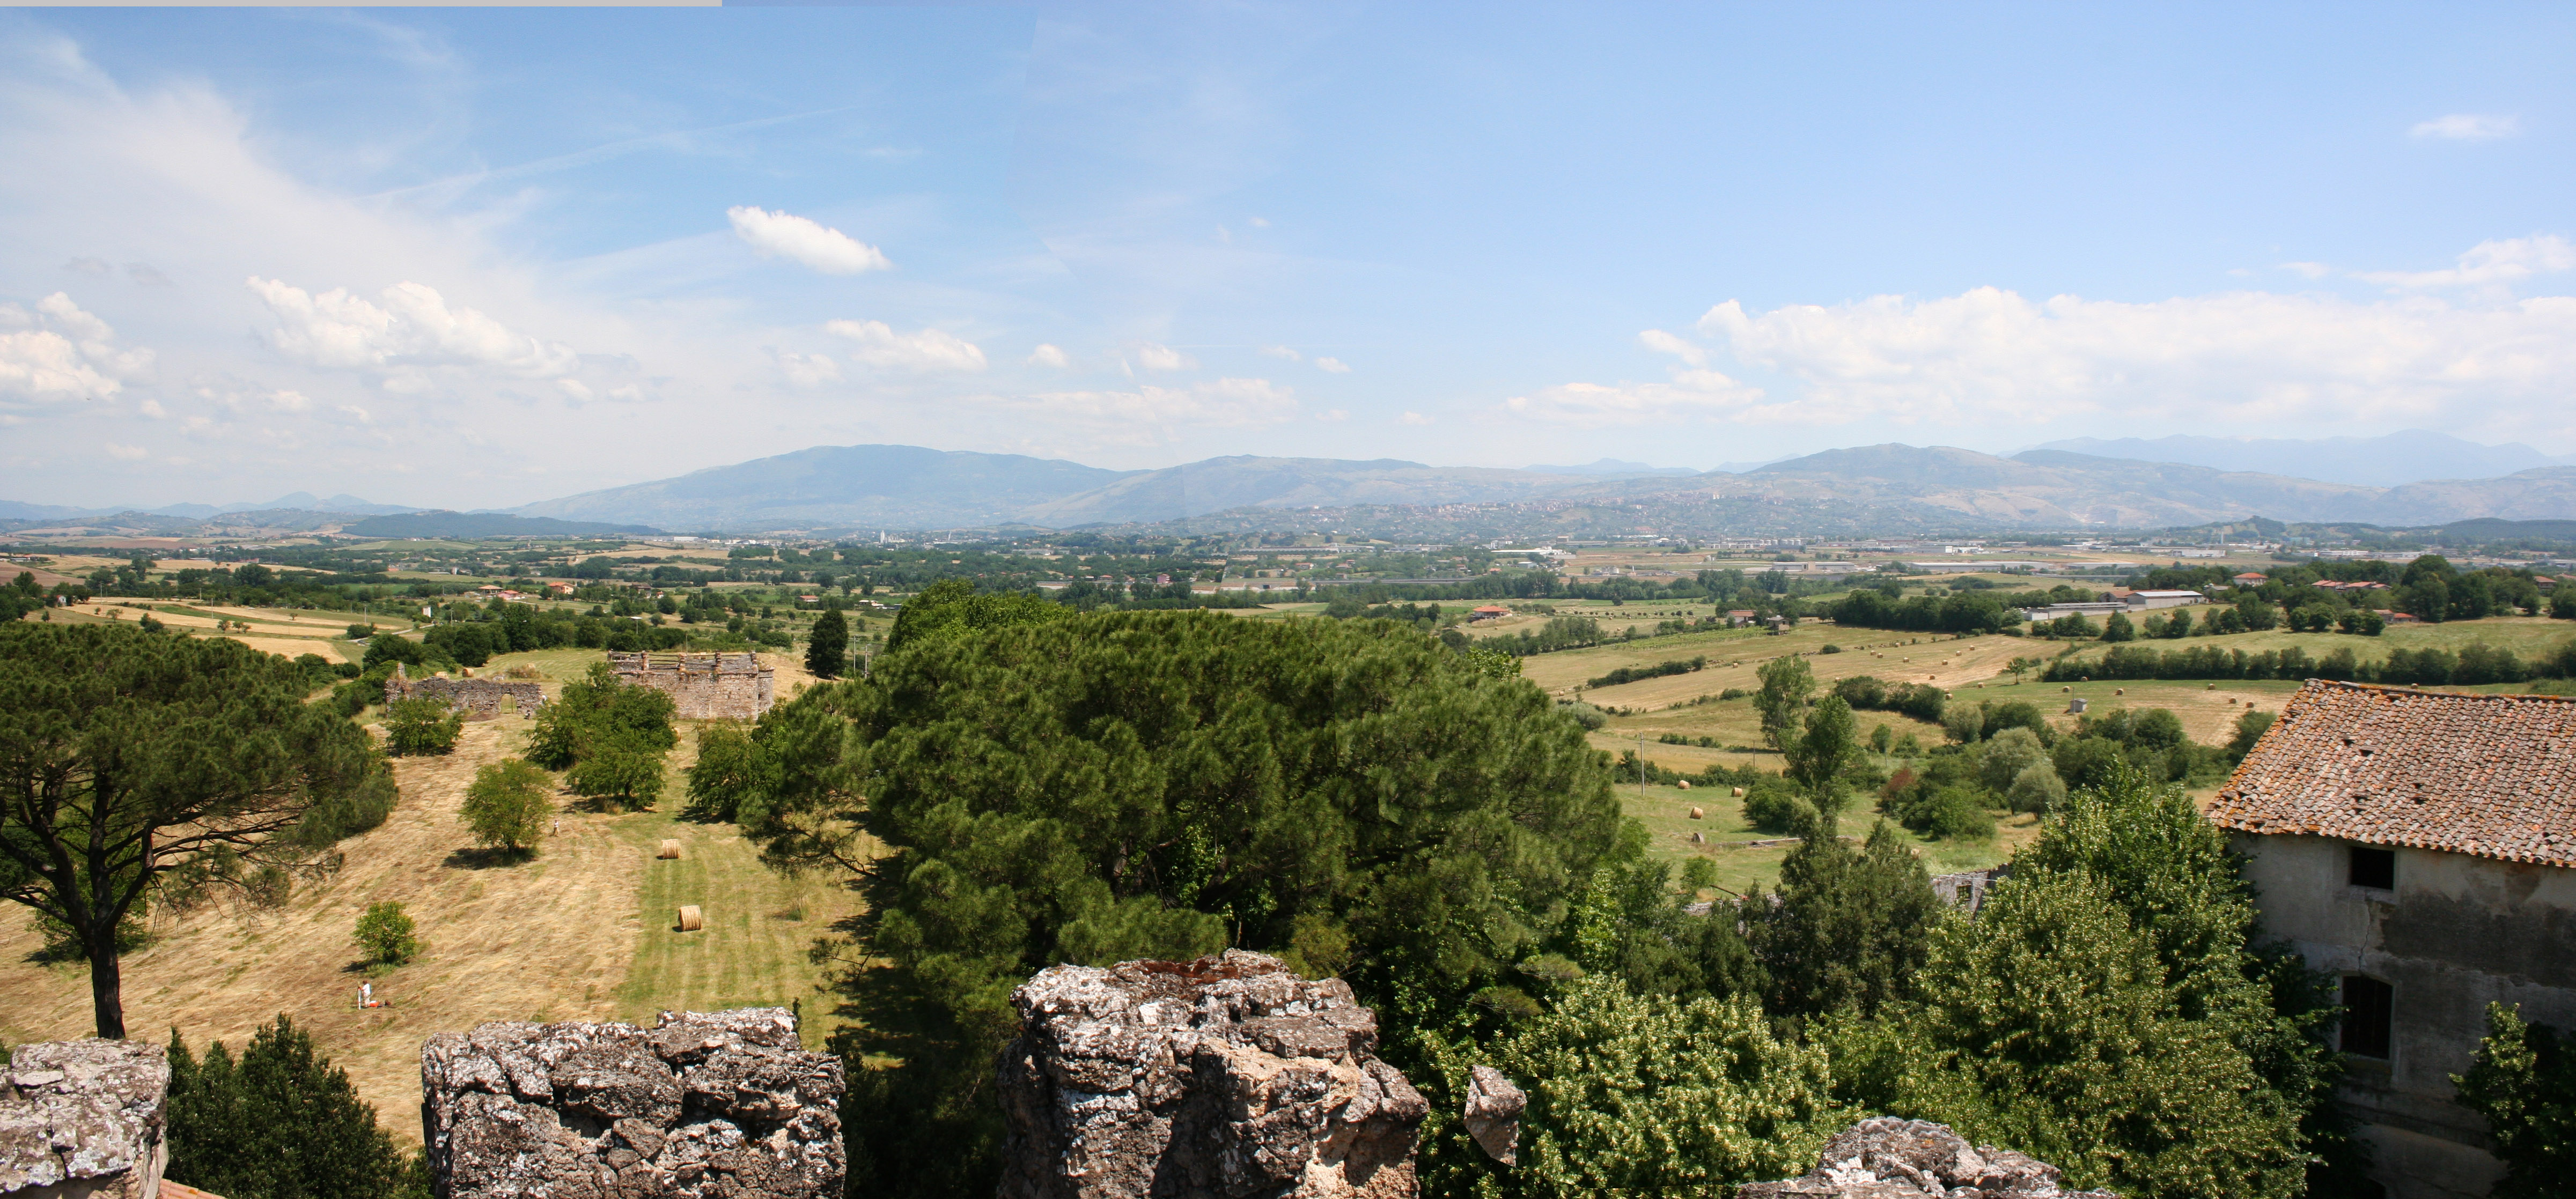 panorama looking north.jpg